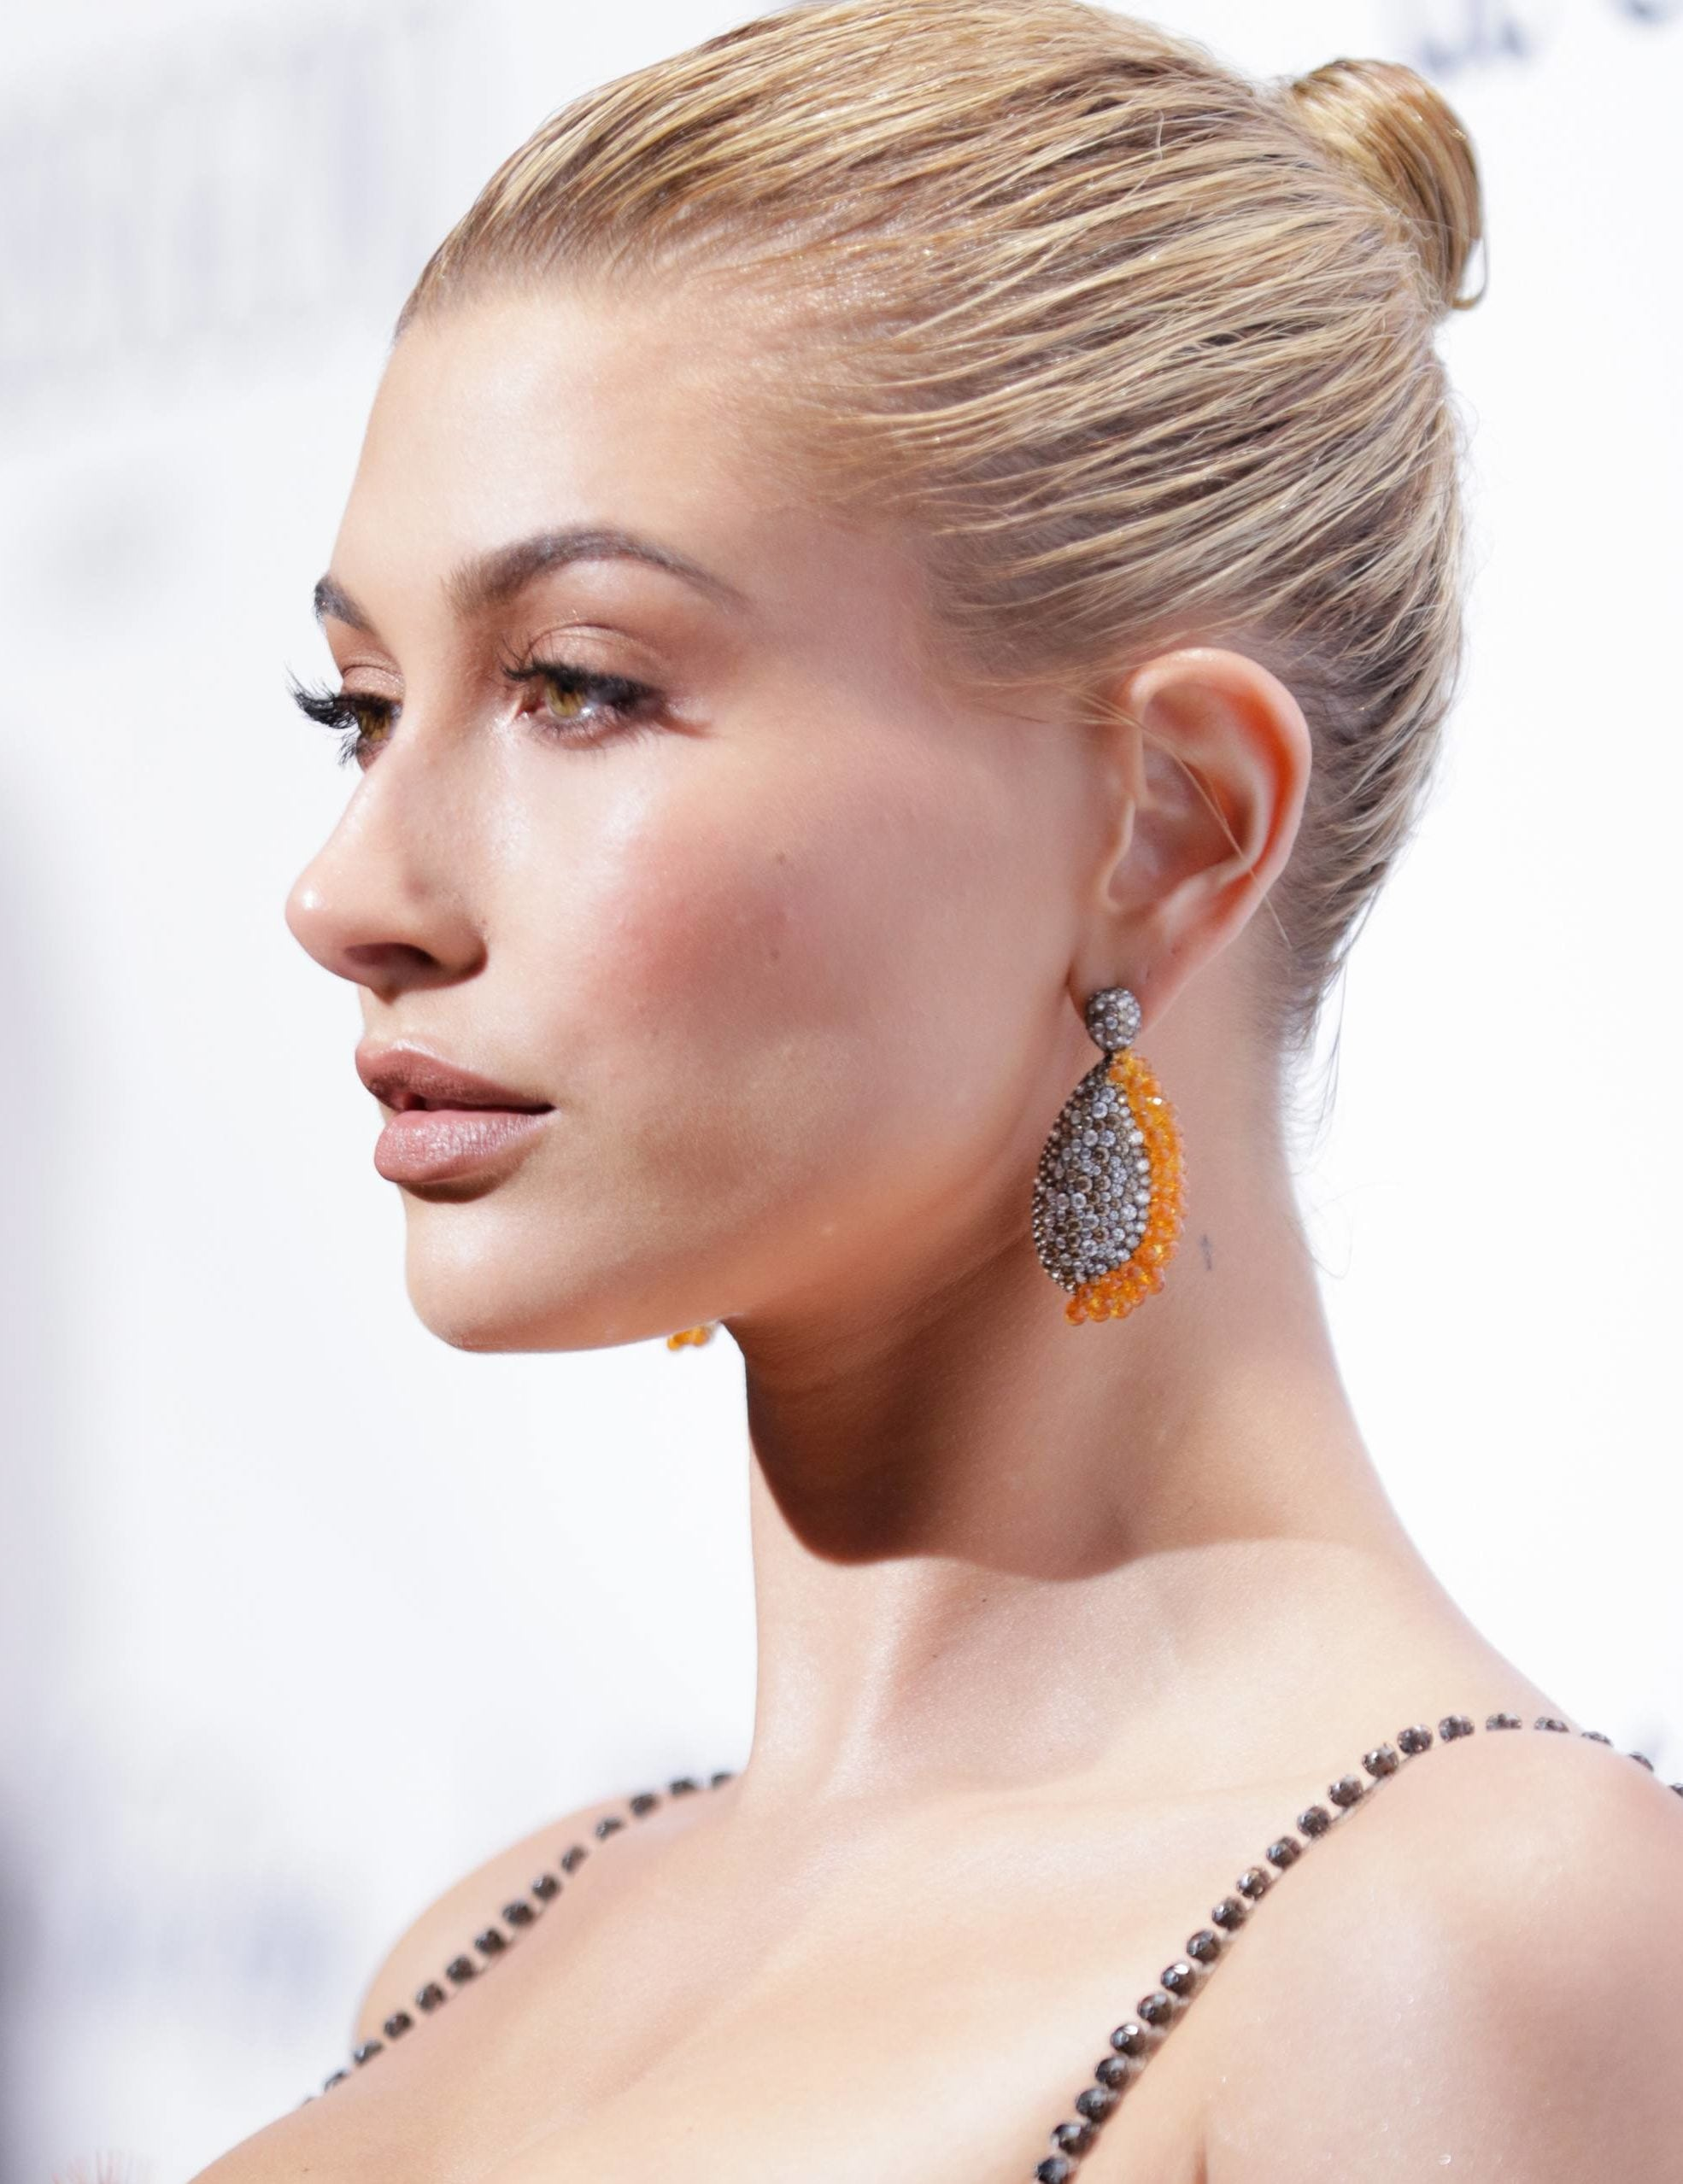 hailey baldwin with her blonde hair in a tight topknot style